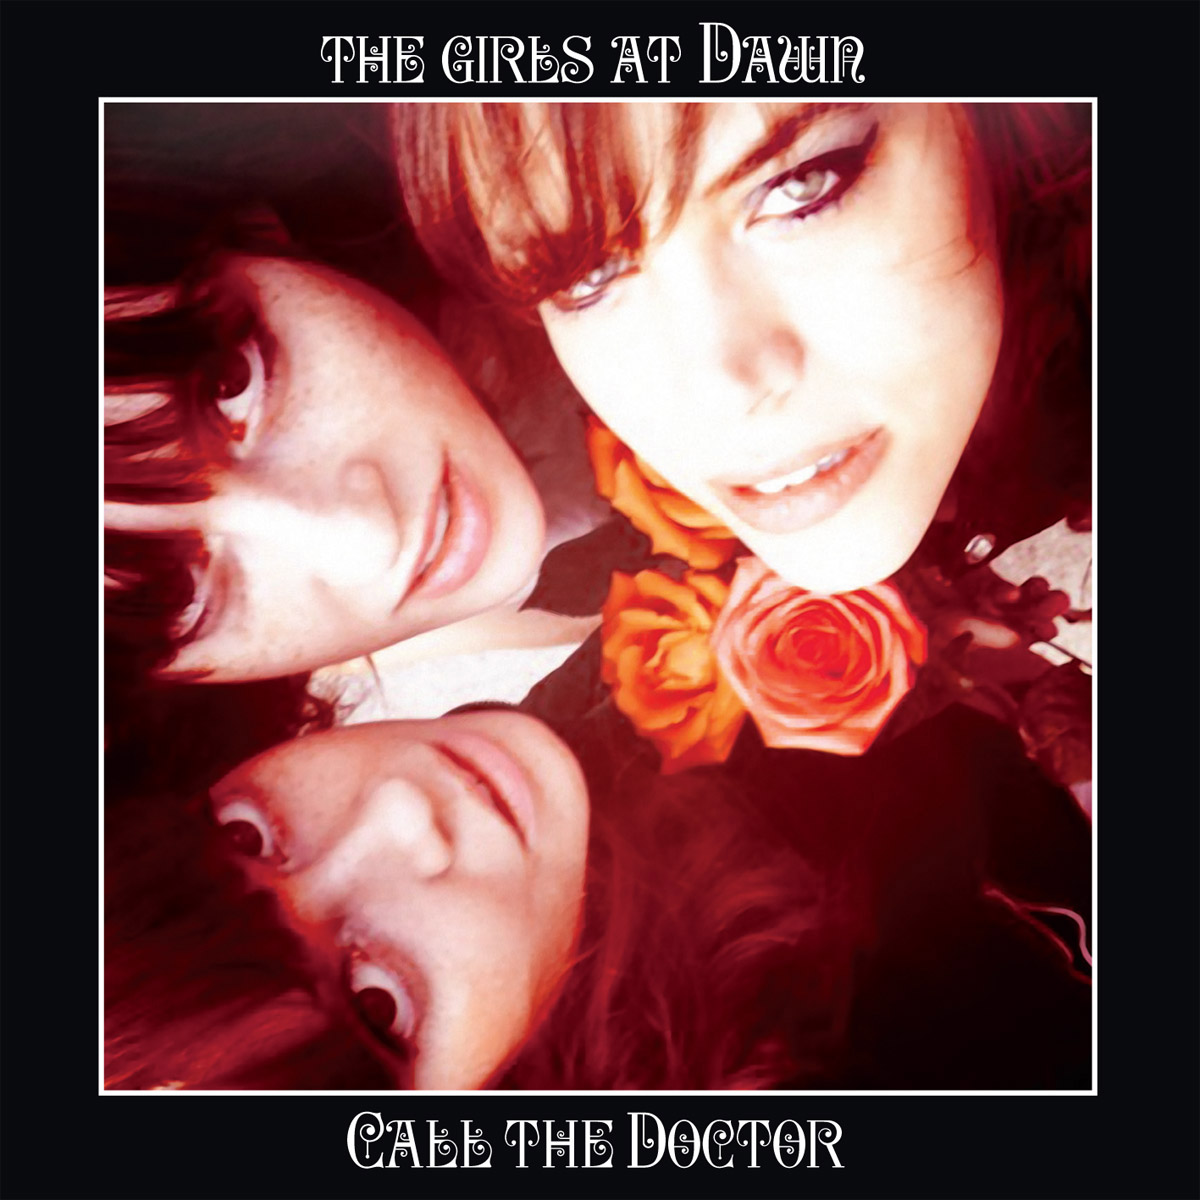 The Girls at Dawn - Call the Doctor LP/CD cover